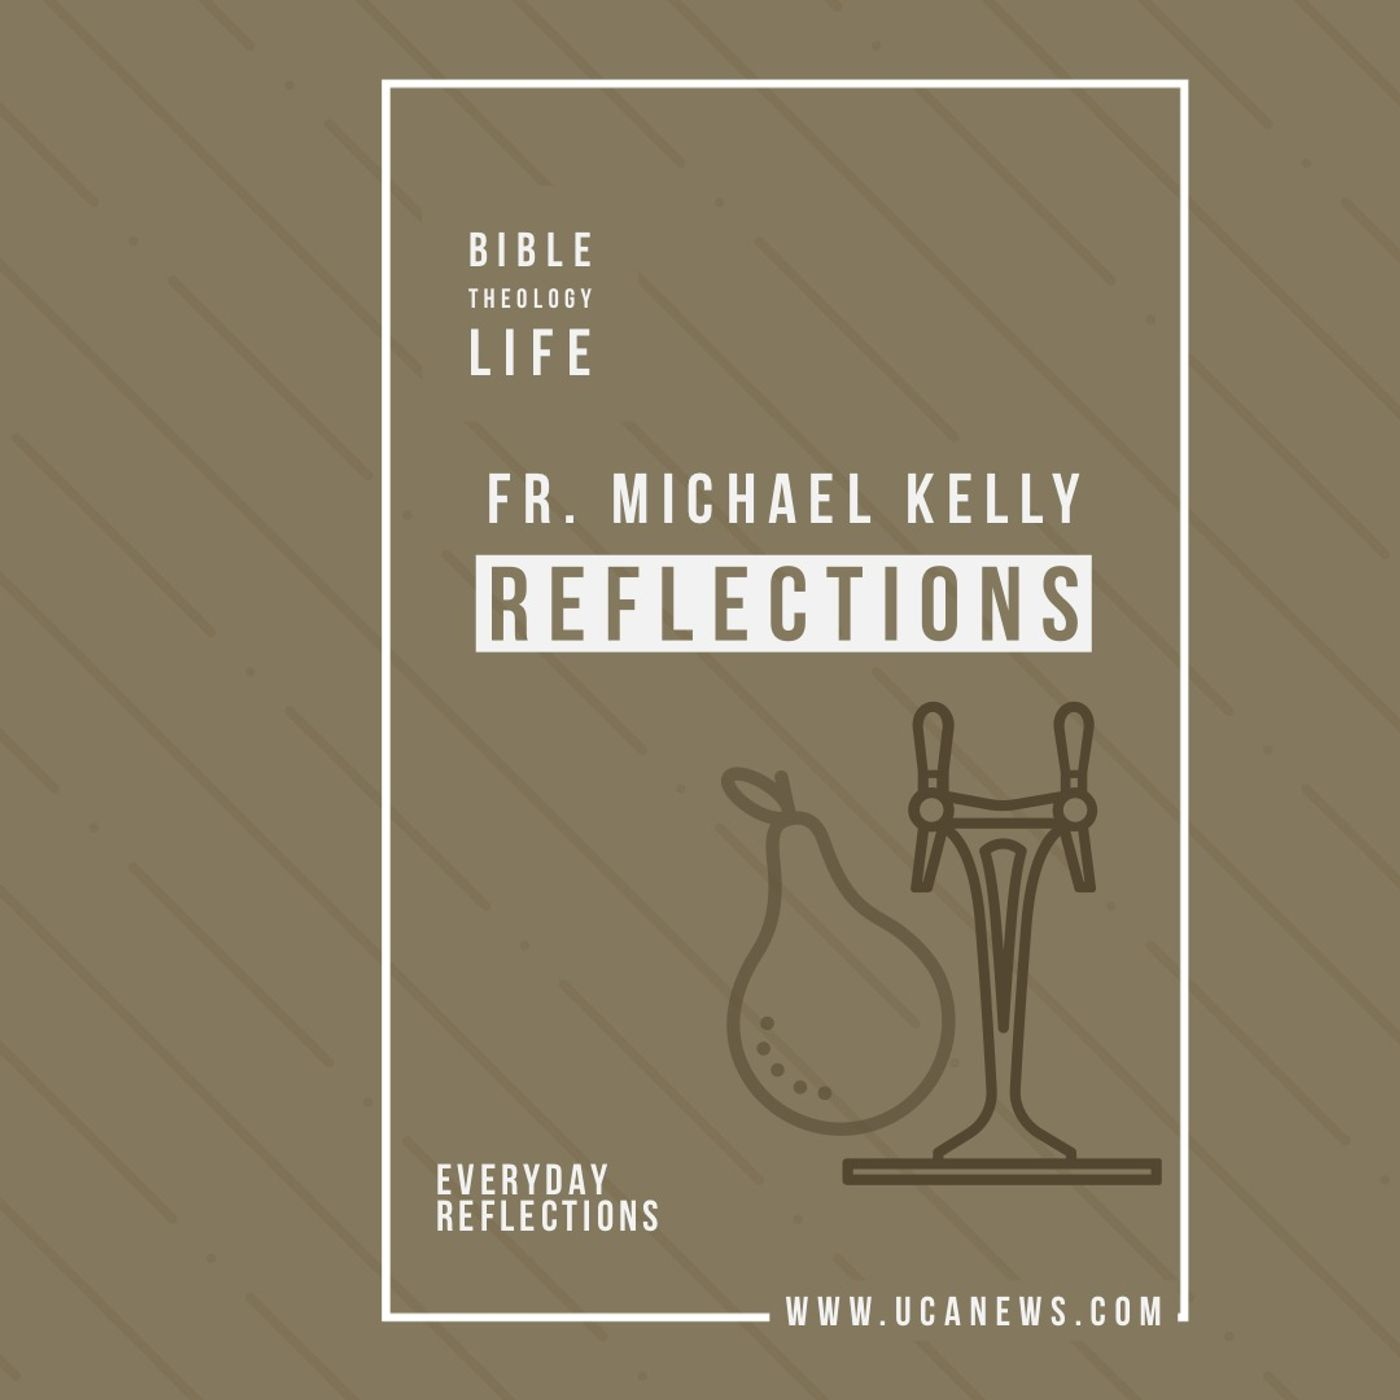 Reflections with Fr. Michael Kelly - Wednesday 14 Apr, 2021